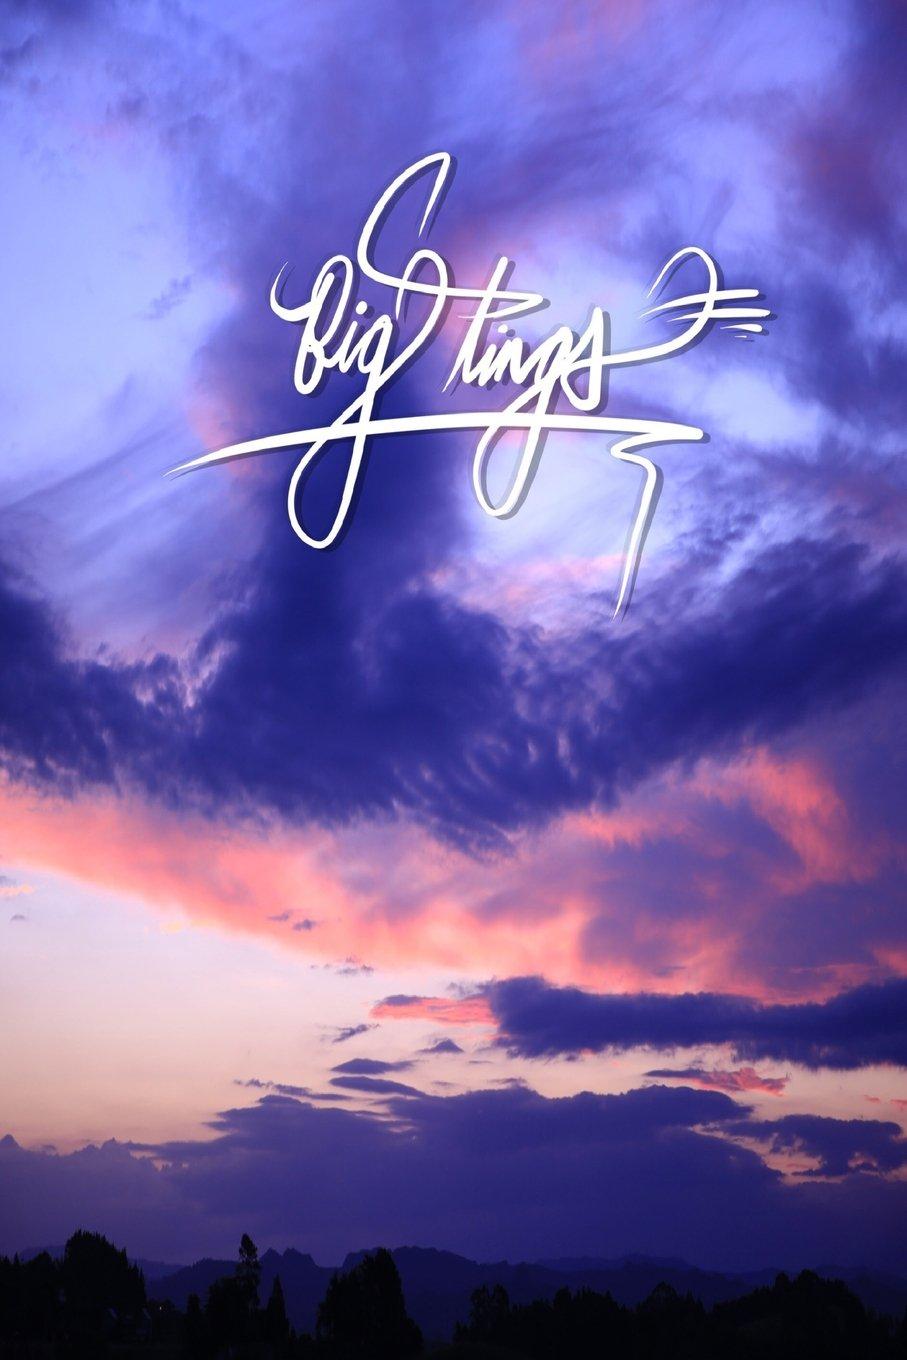 Big tings: 6x9 Inch Lined Journal/Notebook to remind you that you were born to do Big Tings! Be confident, Be bold, THINK BIG!! - Beautiful Sunset, ... Calligraphy Art with photography, Gift idea pdf epub